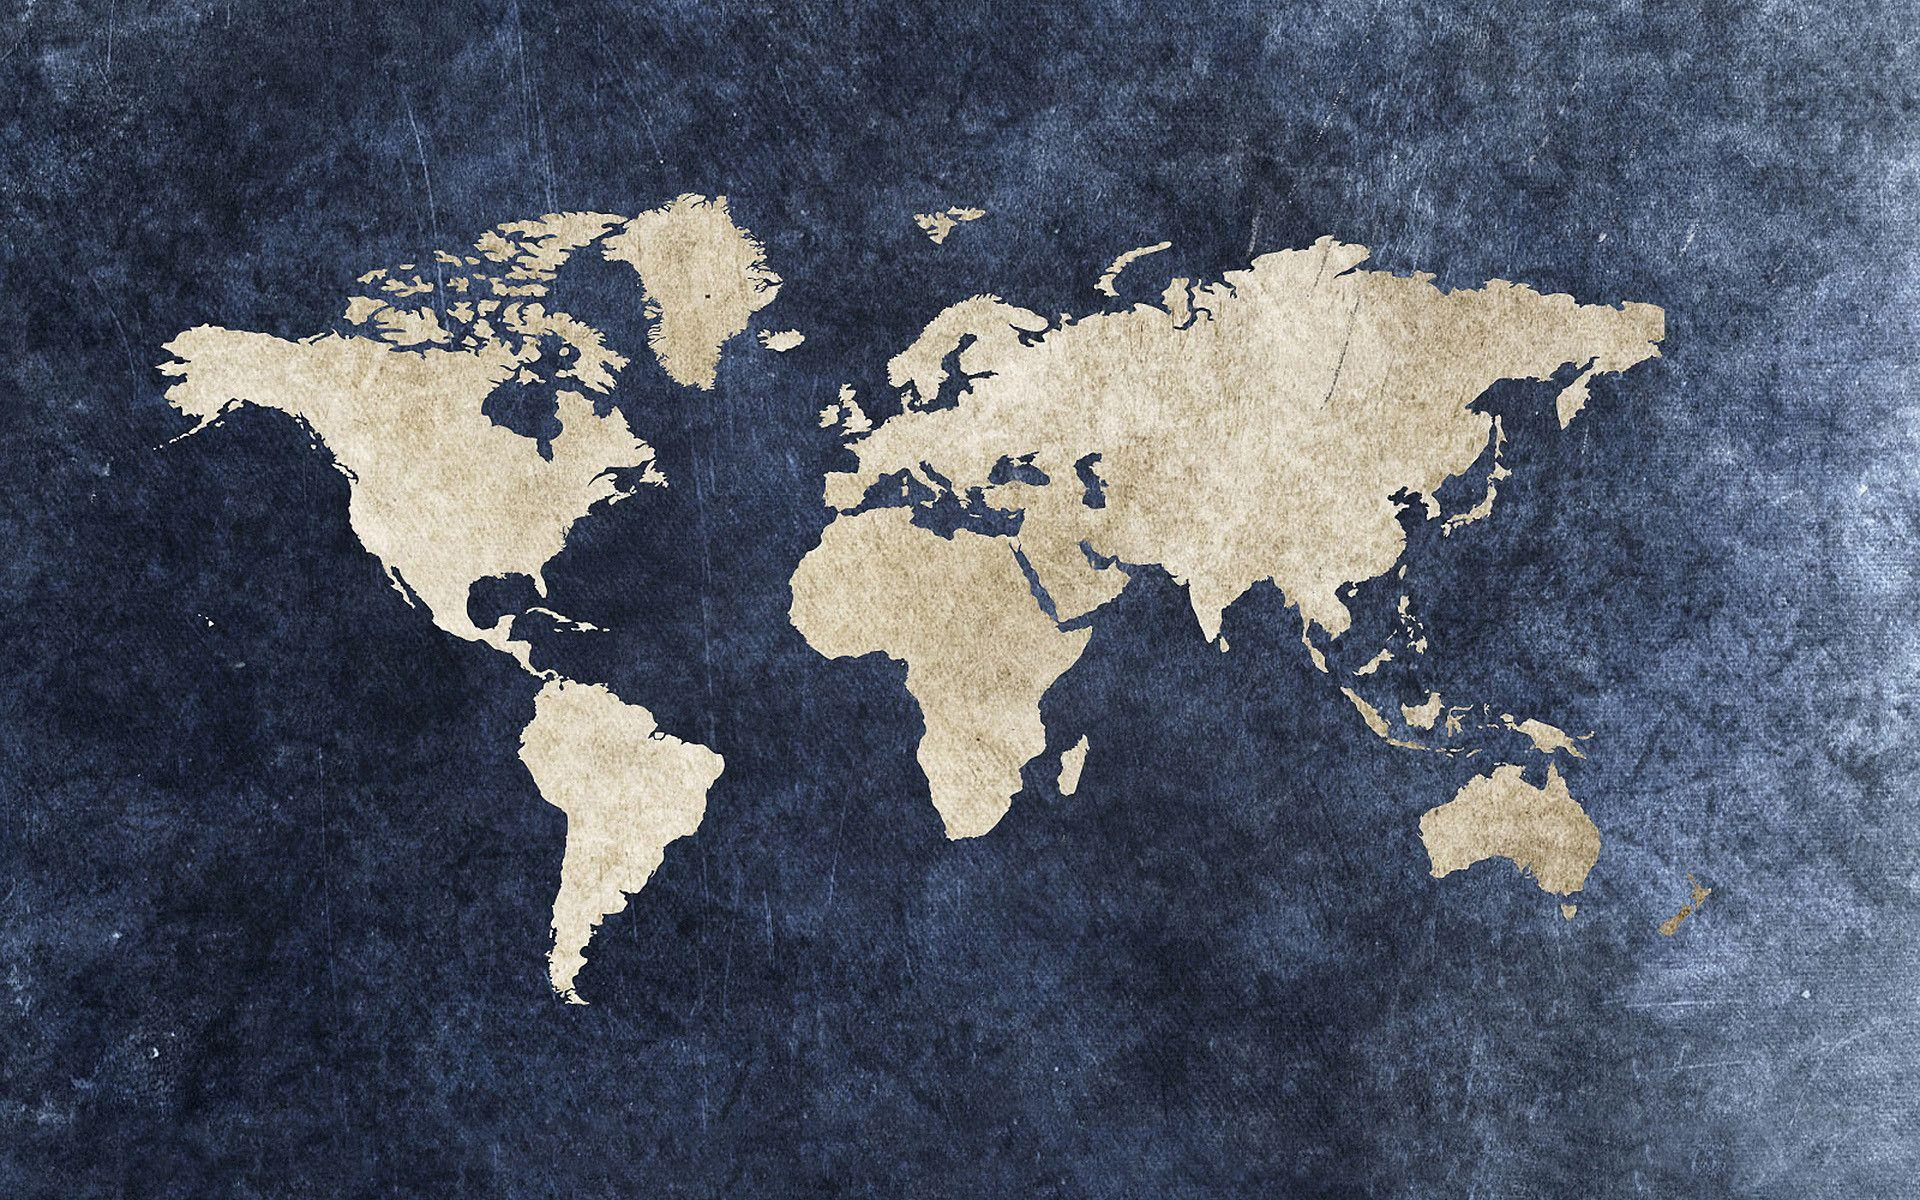 Free Desktop World Map: World Map Wallpapers High Resolution